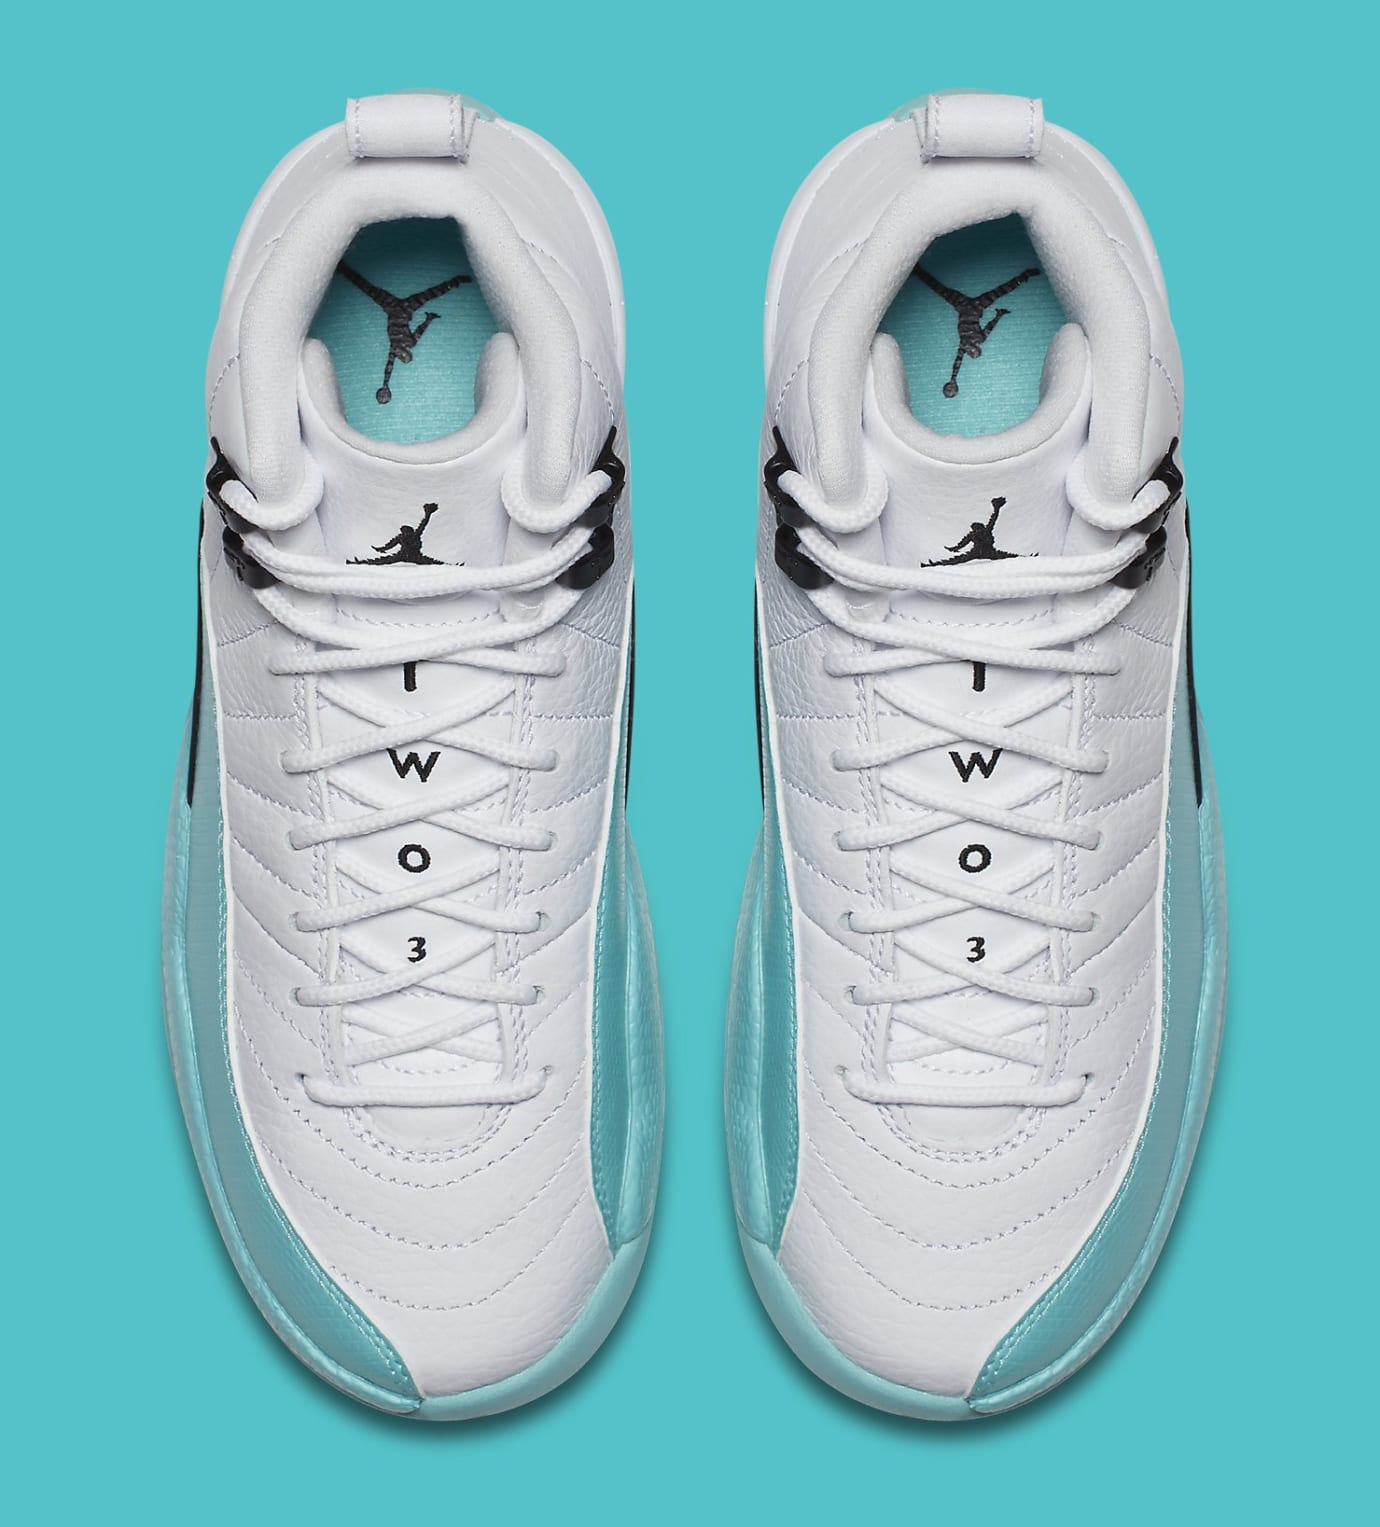 ef108af211ea Air Jordan 12 Retro GG  White Light Aqua-Black  510815-100 Release ...